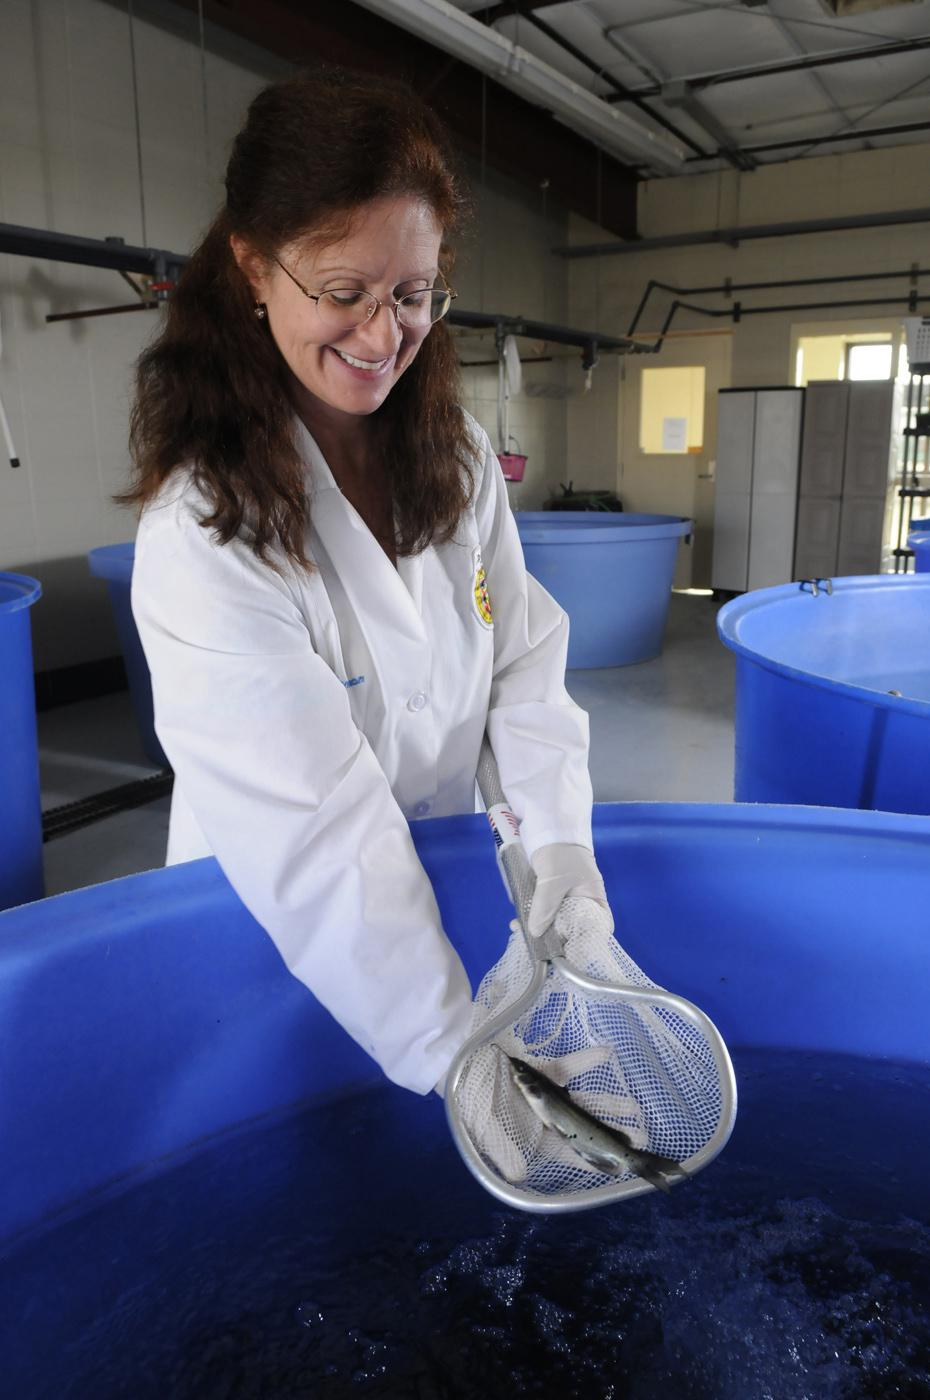 Dr. Lora Petrie-Hanson, an associate professor of immunology in MSU's College of Veterinary Medicine, examines a channel catfish raised for aquaculture disease research in the university's fish hatchery. (Photo by Tom Thompson)